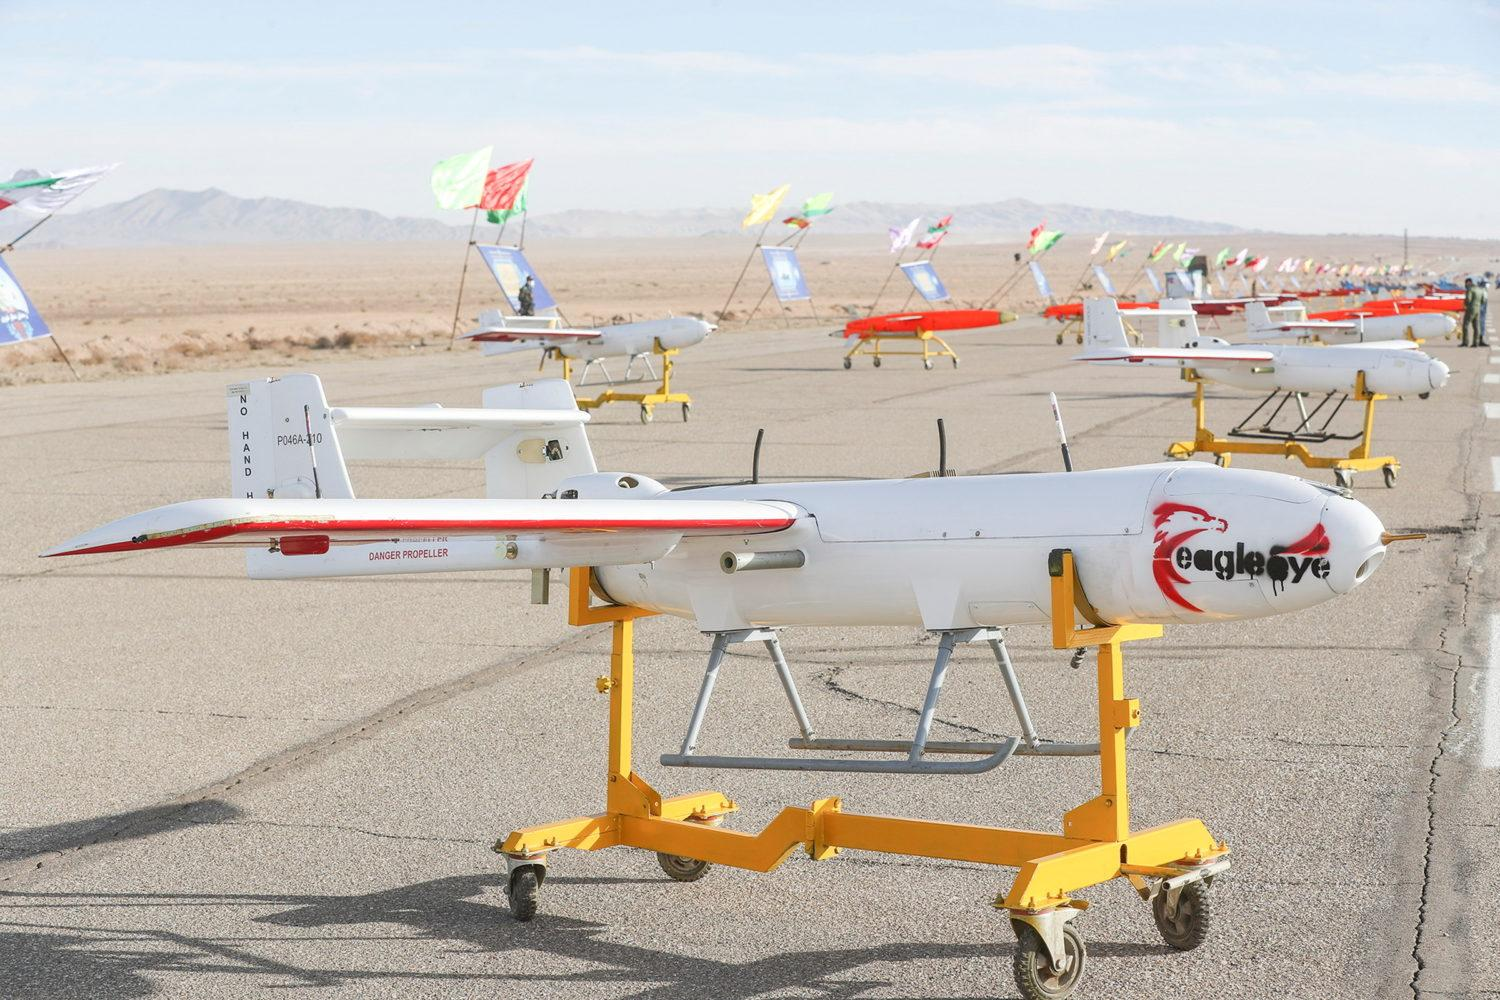 Iran tests drones in military exercise   The Jim Bakker Show